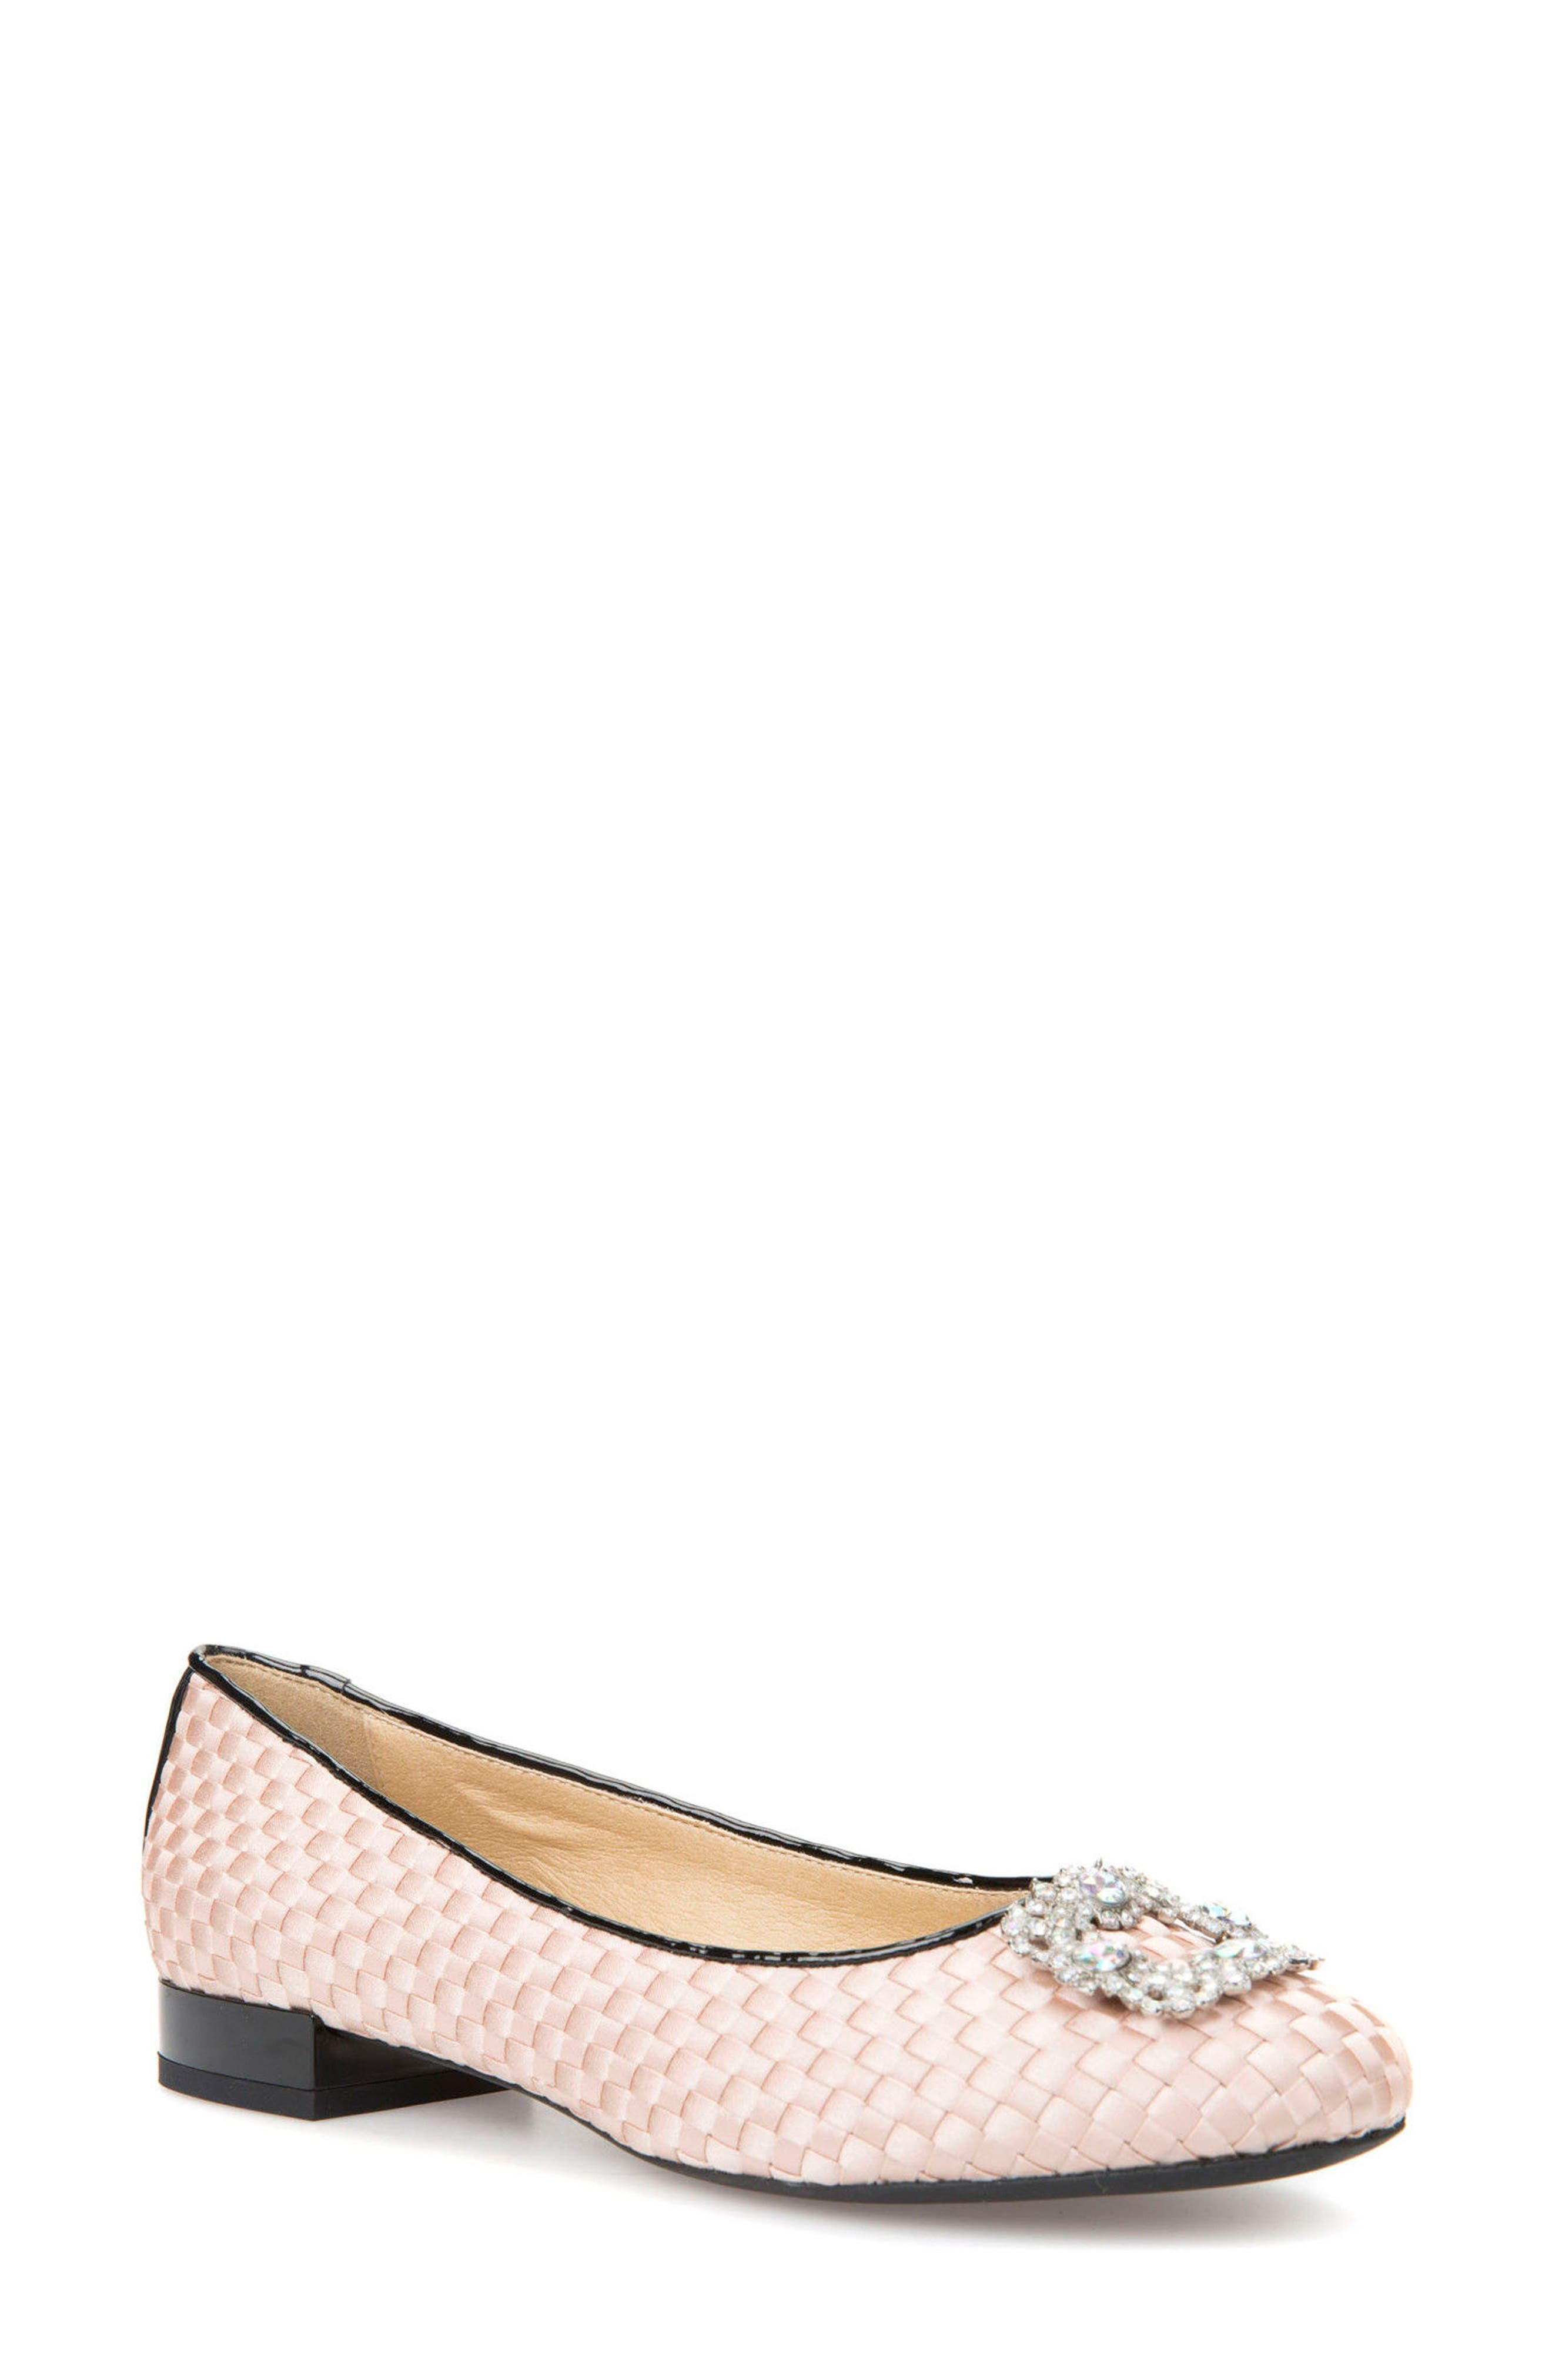 Wistrey Woven Embellished Slip-On,                             Main thumbnail 1, color,                             250